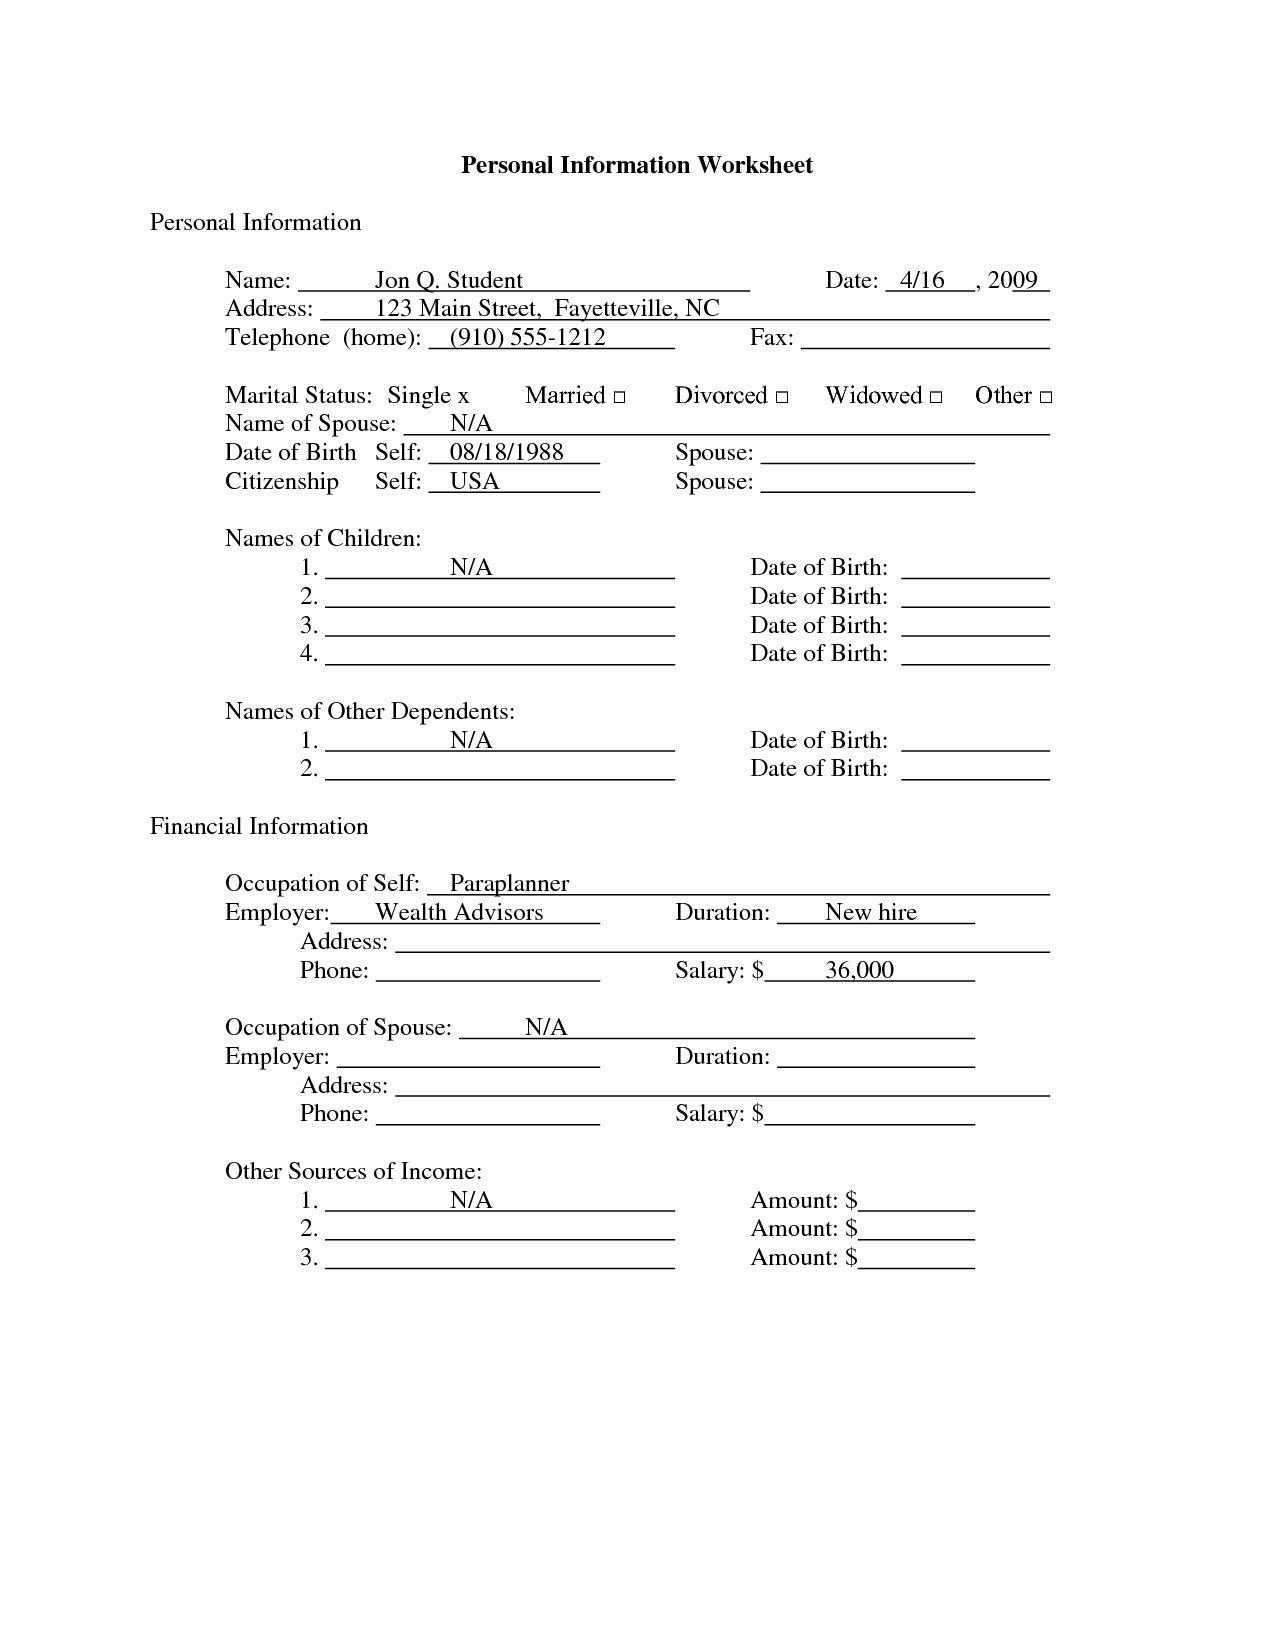 50 Personal Information Form For Students